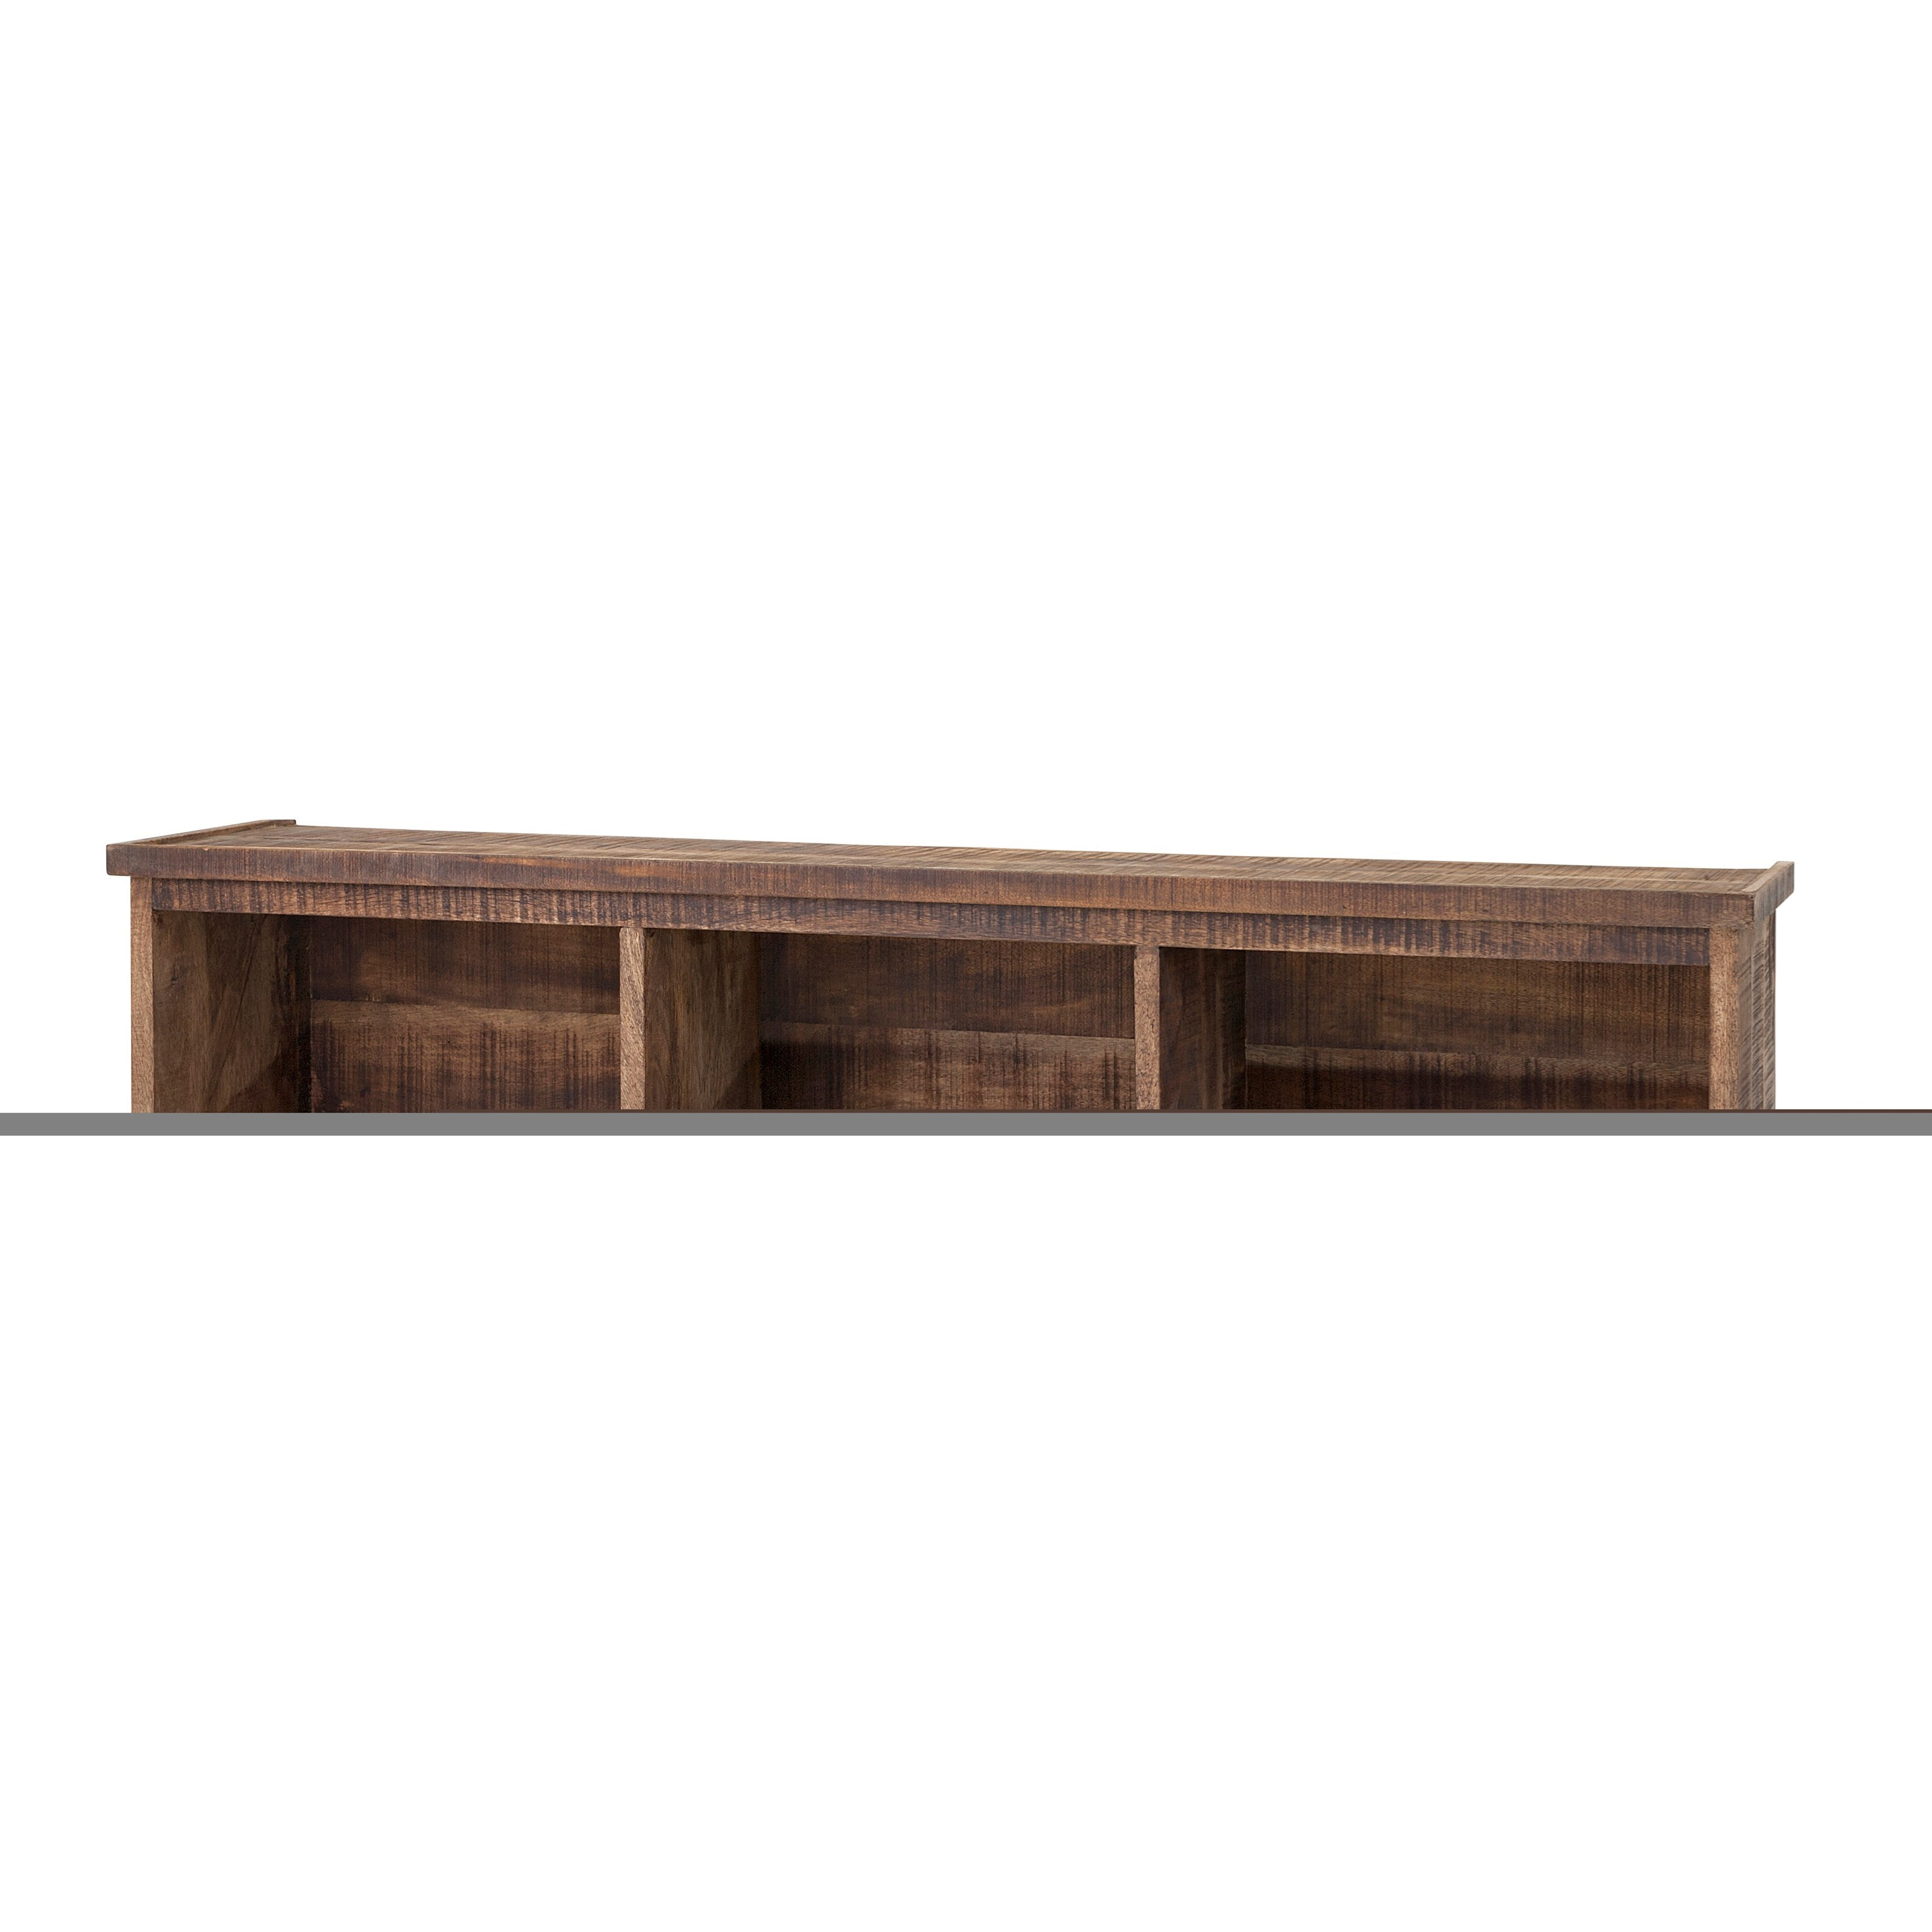 Accent Furniture Ebba Cubby Wall Shelf by IMAX Worldwide Home at Alison Craig Home Furnishings